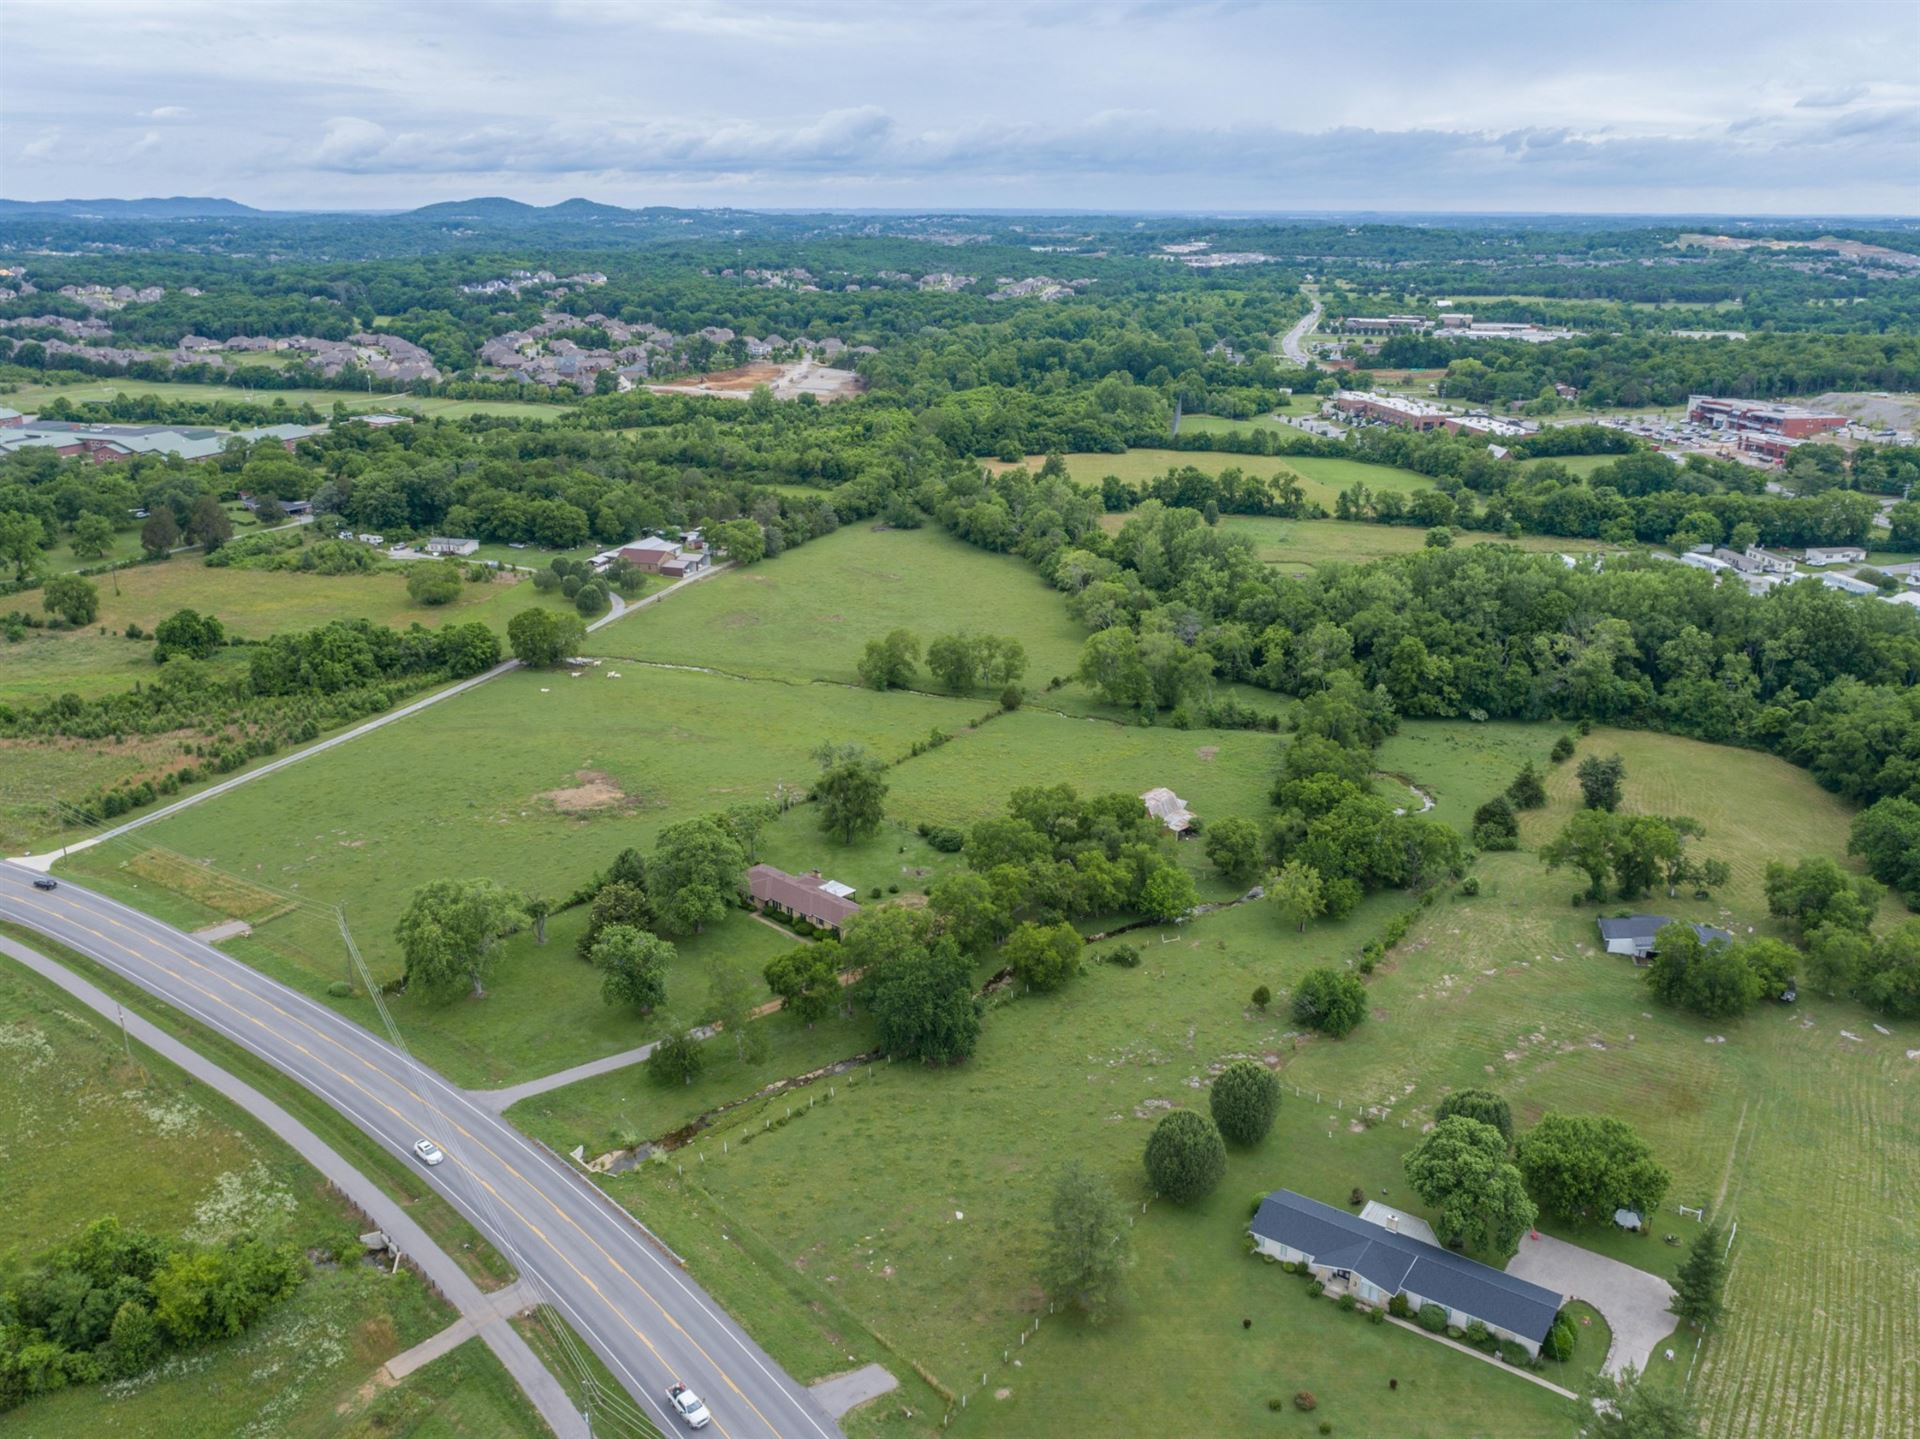 Photo of 1686 Sunset Rd, Brentwood, TN 37027 (MLS # 2261296)